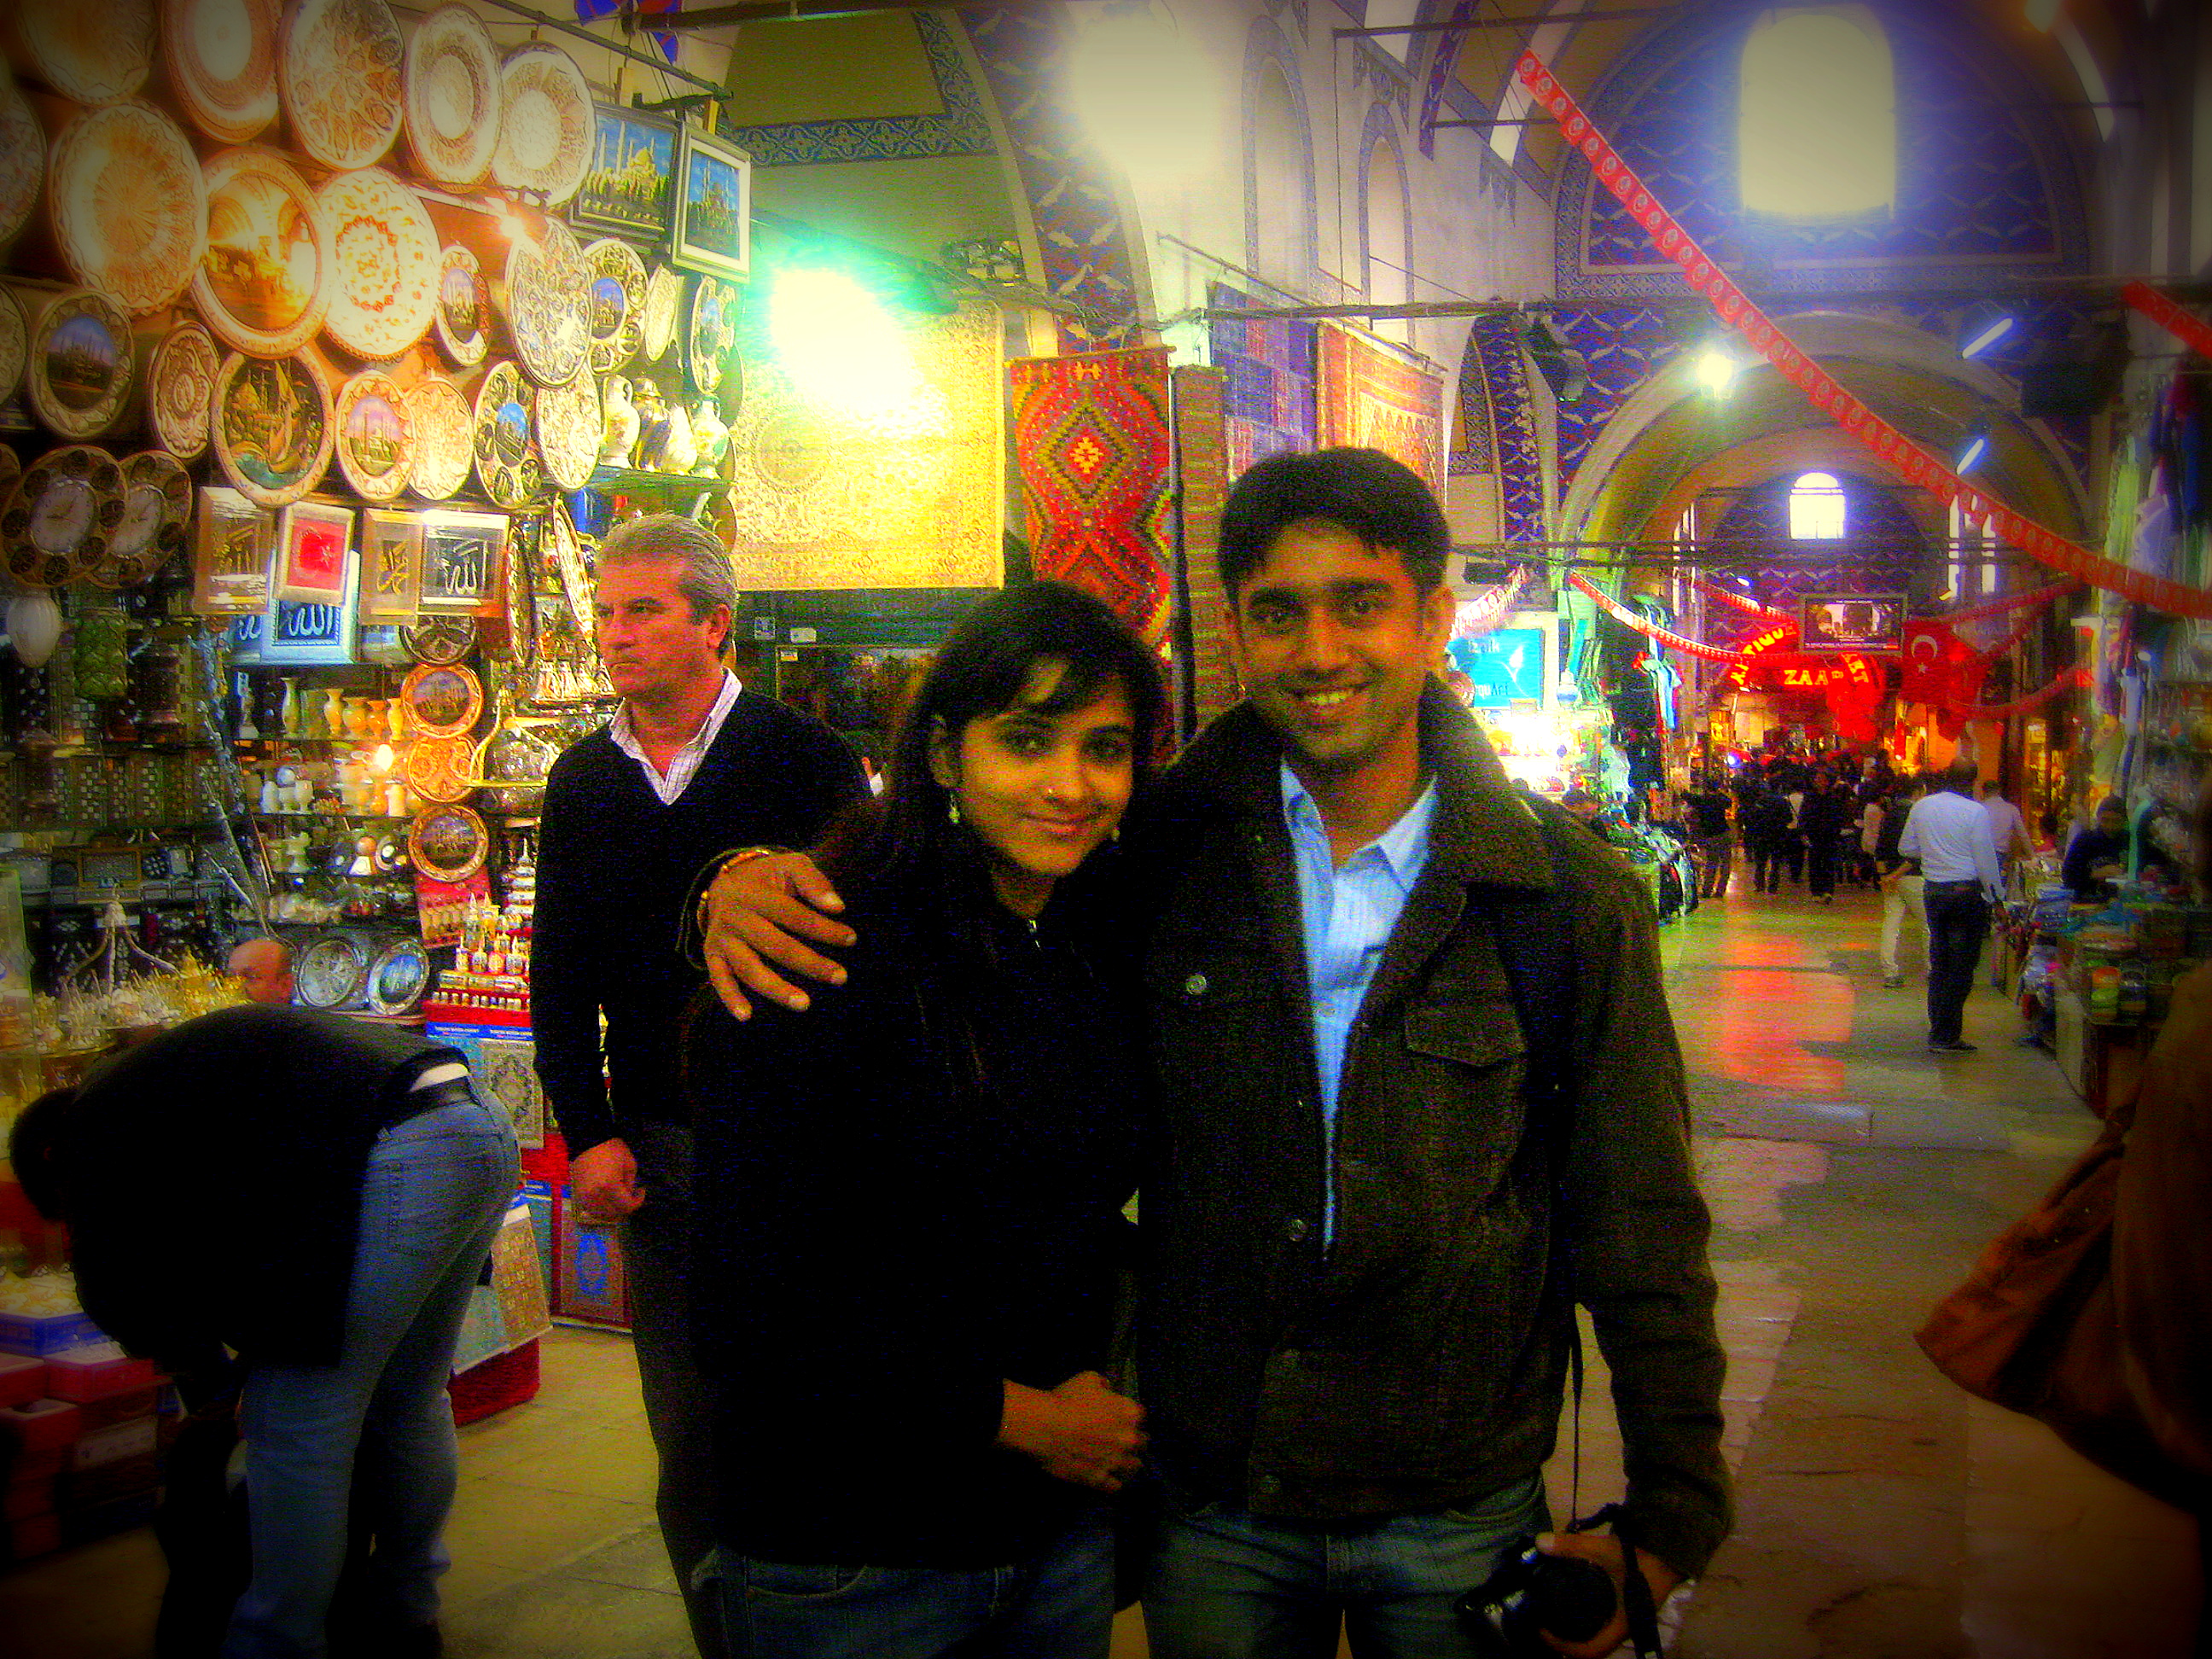 The Brightness and richness of the Grand Bazaar